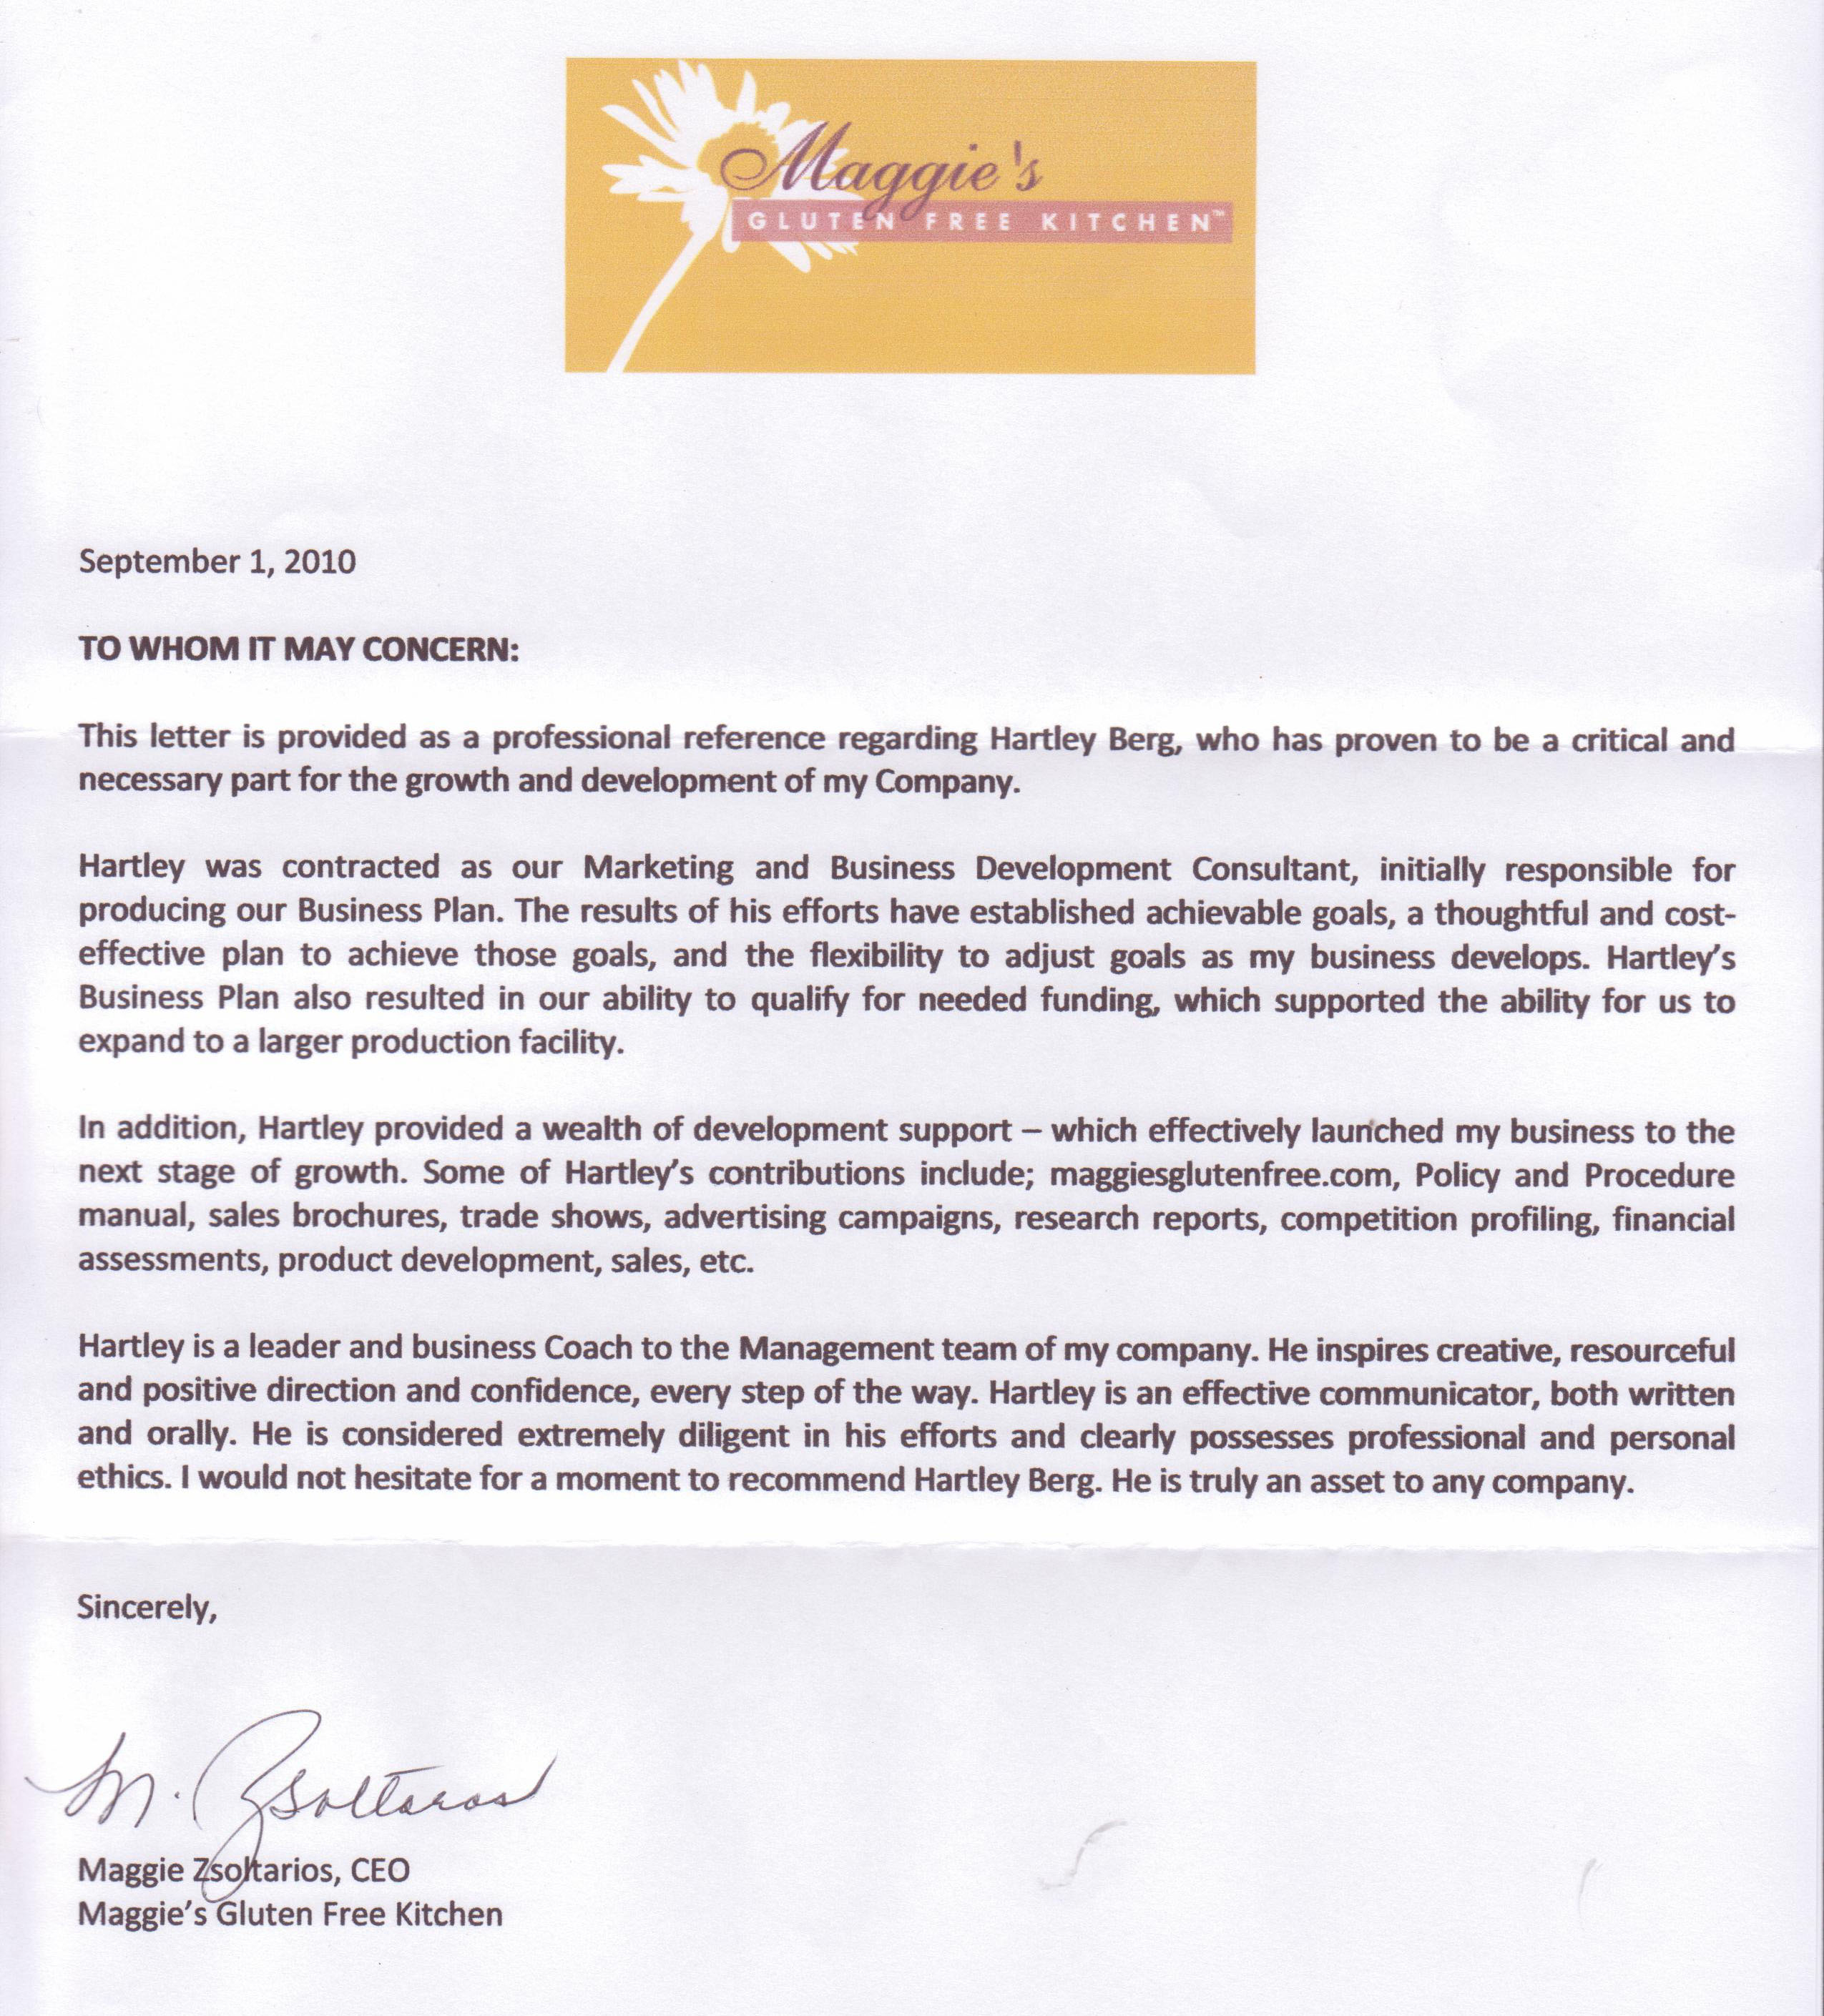 Maggie's Gluten Free Kitchen - Letter of Reference